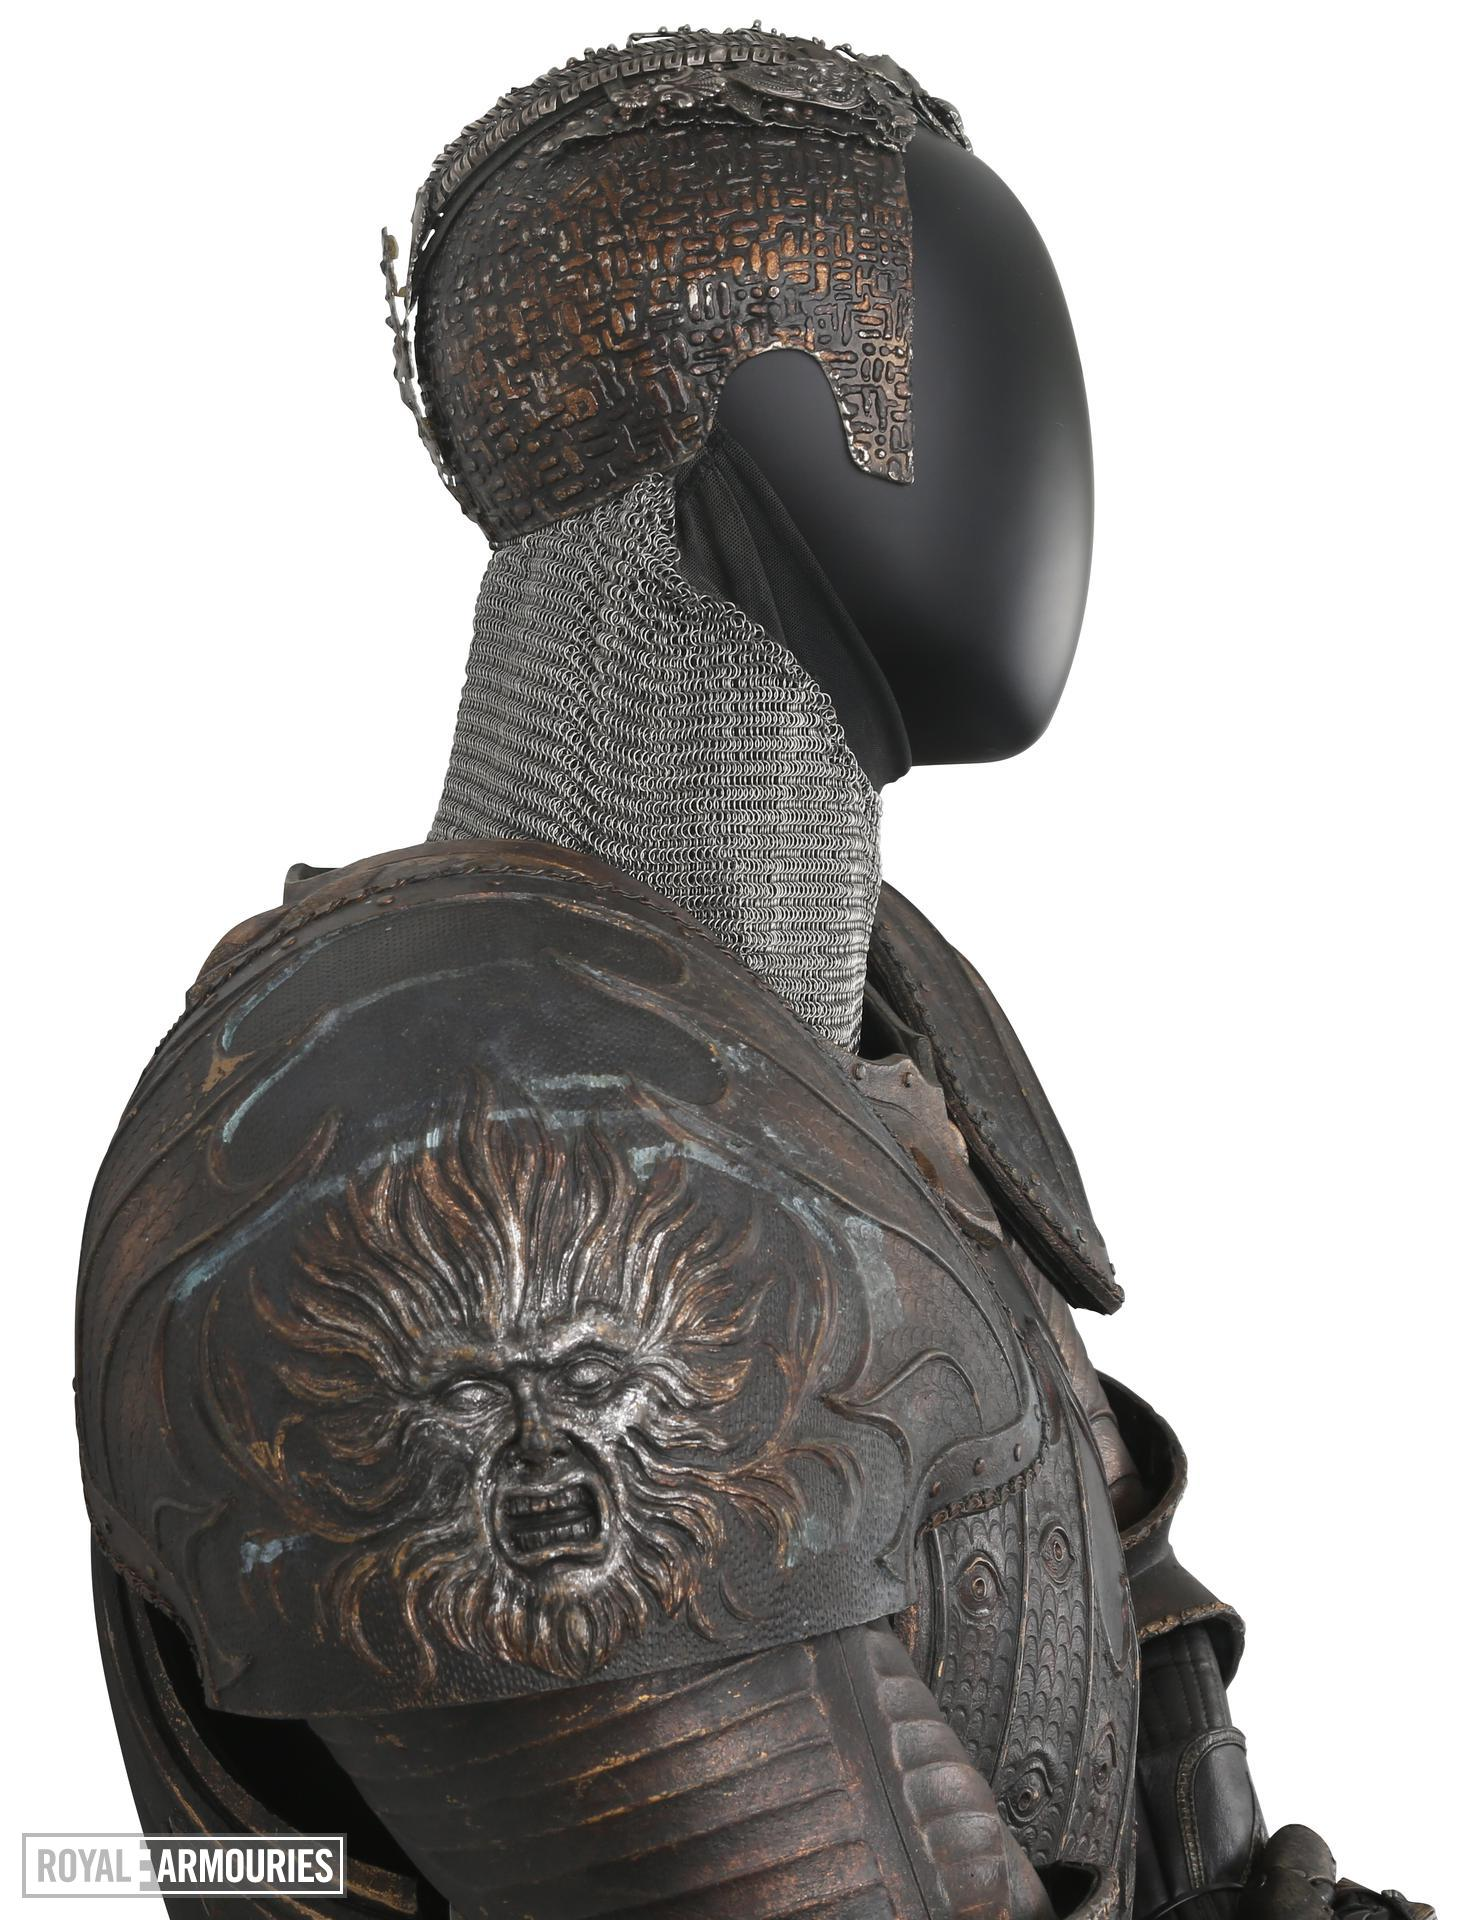 The Lord Marshal's costume from the film the Chronicles of Riddick. Ornately decorated and highly detailed. Bronze and black in appearance but made from hard rubber urethane and aluminium. II.409